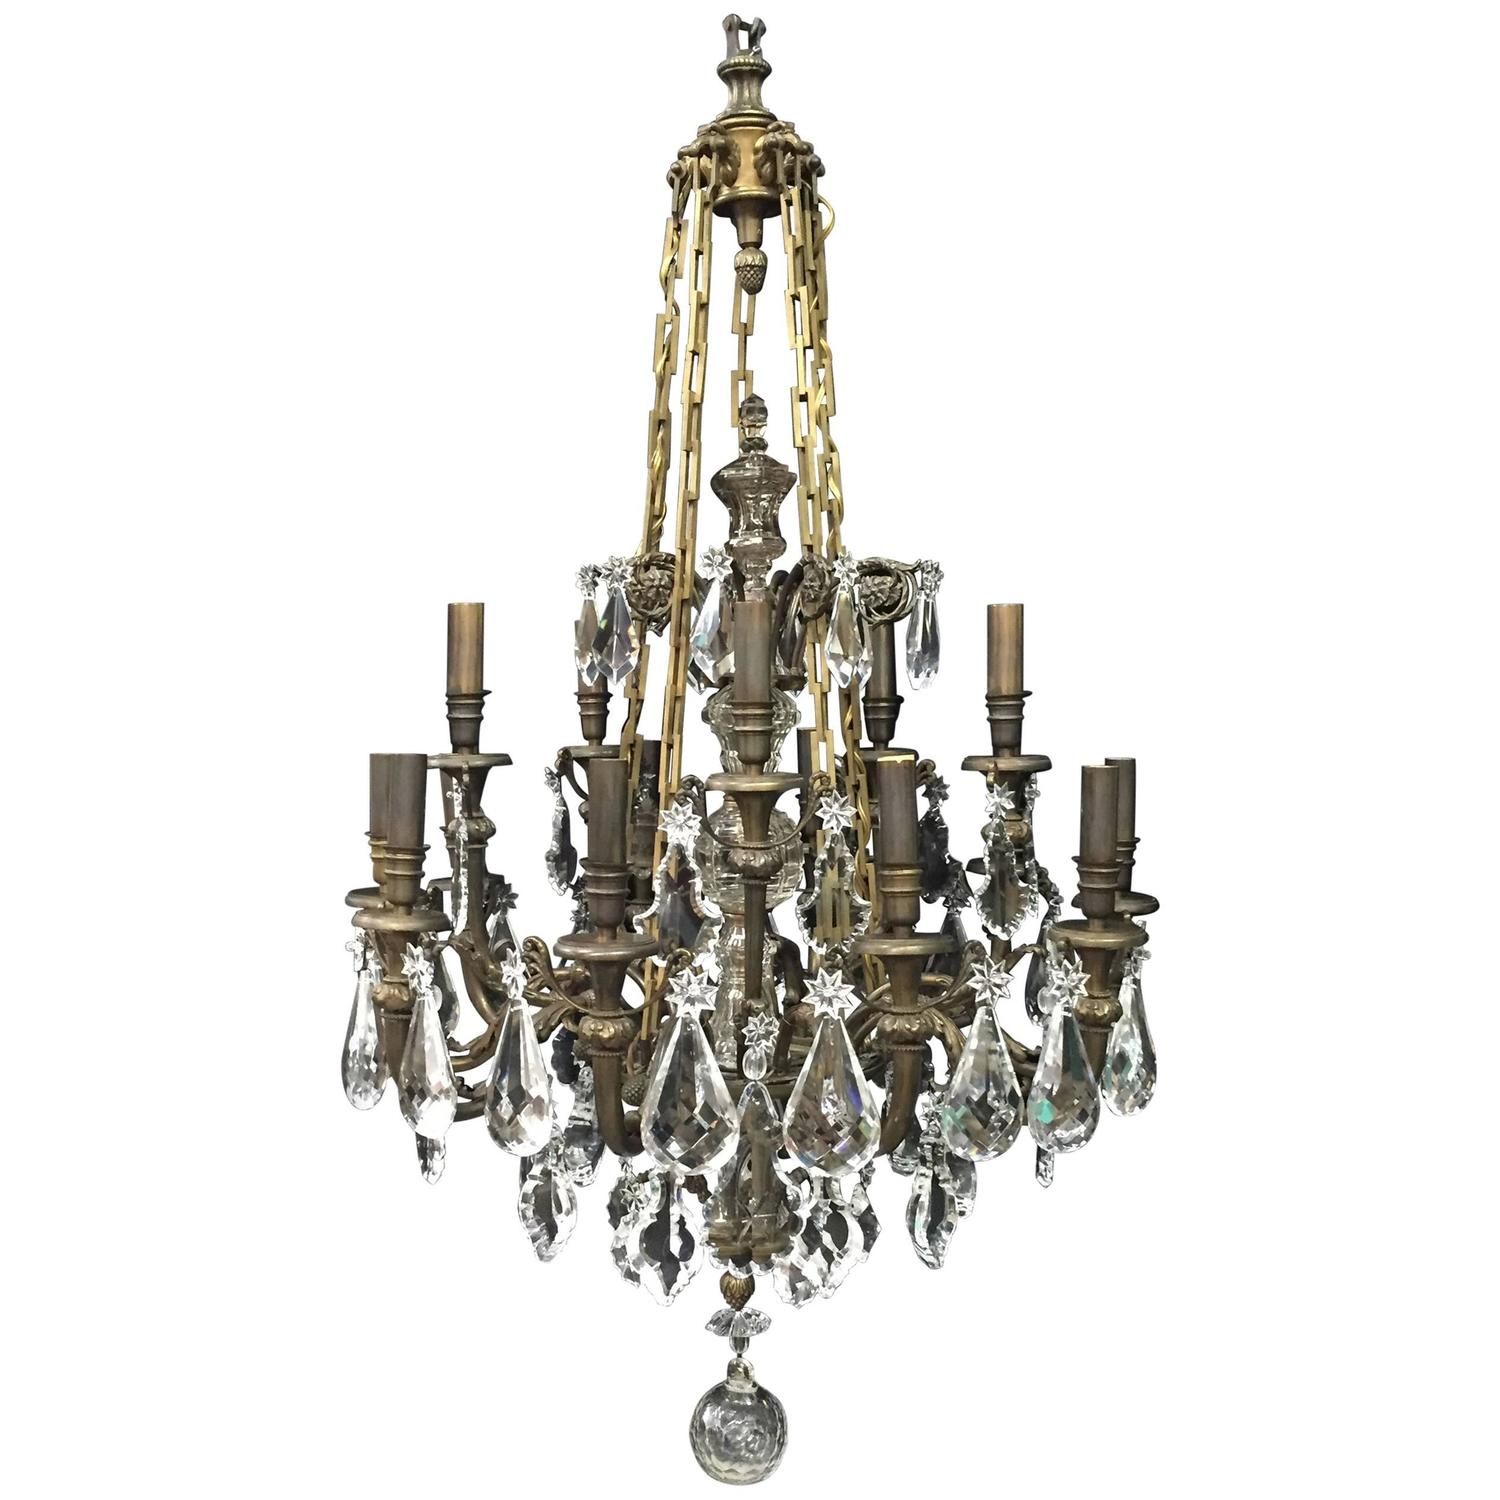 Pair of Baccarat Crystal and Bronze Chandeliers at 1stdibs